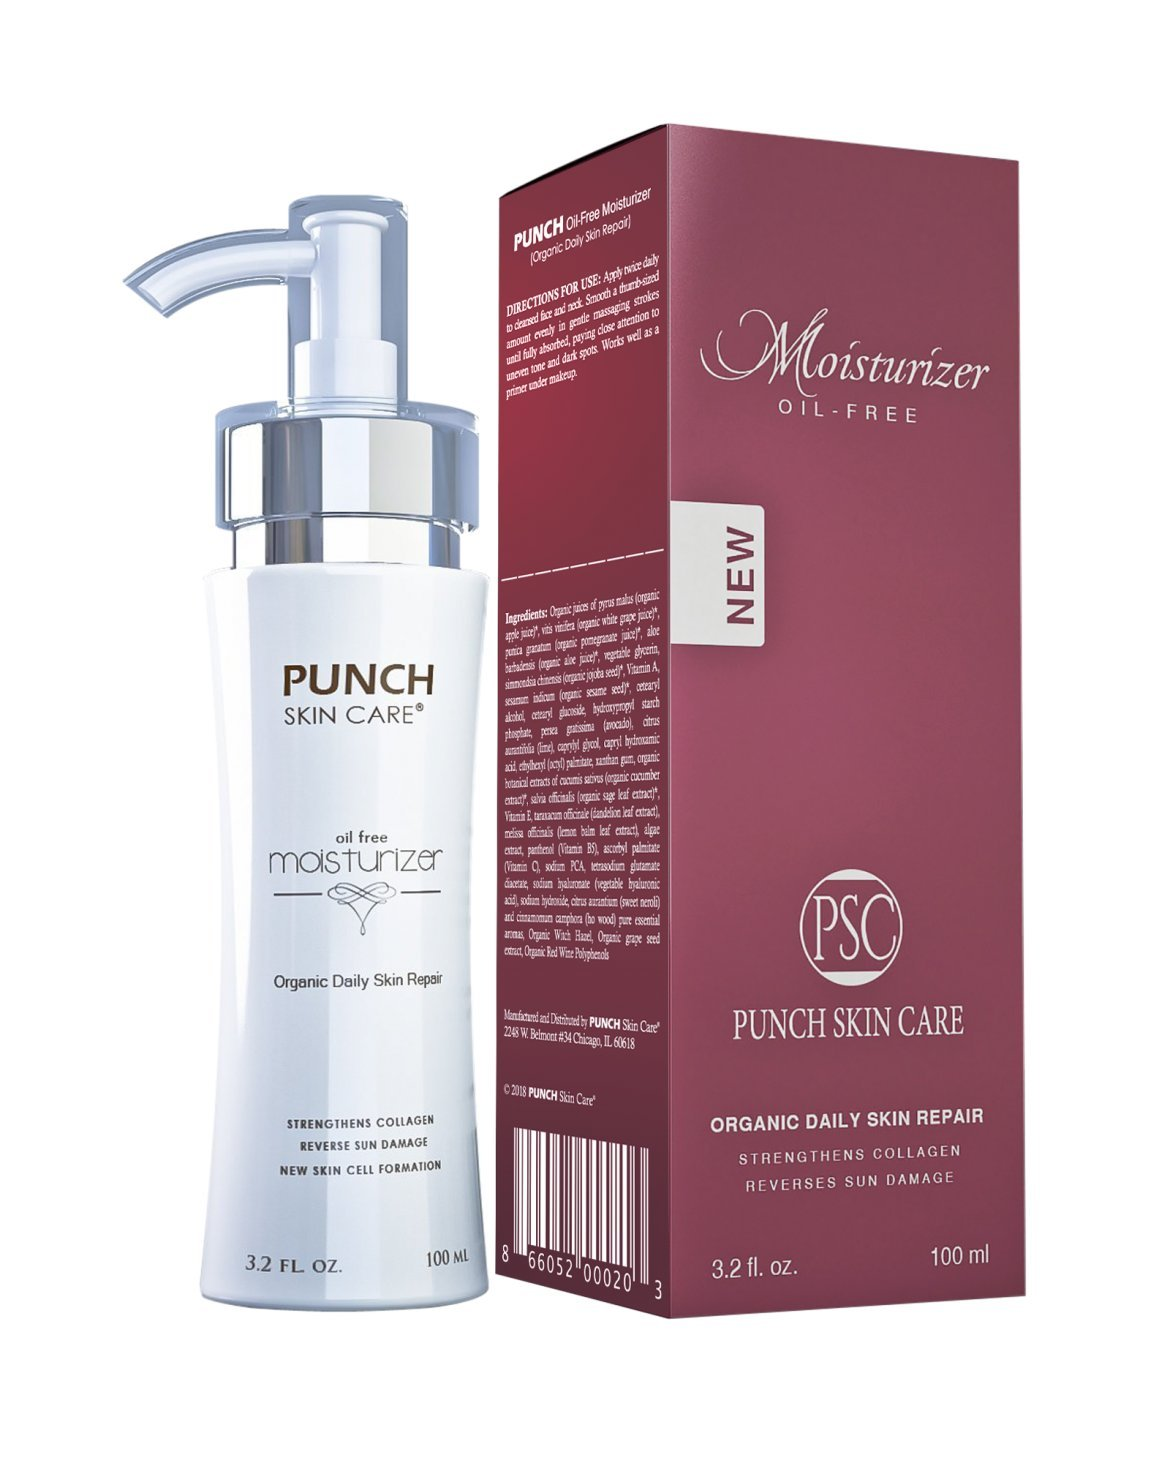 Upgrade Your Skin with Punch Skin Care Premium Daily Skin Repair Facial Moisturizer | All Natural Oil-Free Facial Moisturizing, (4 fl. oz)